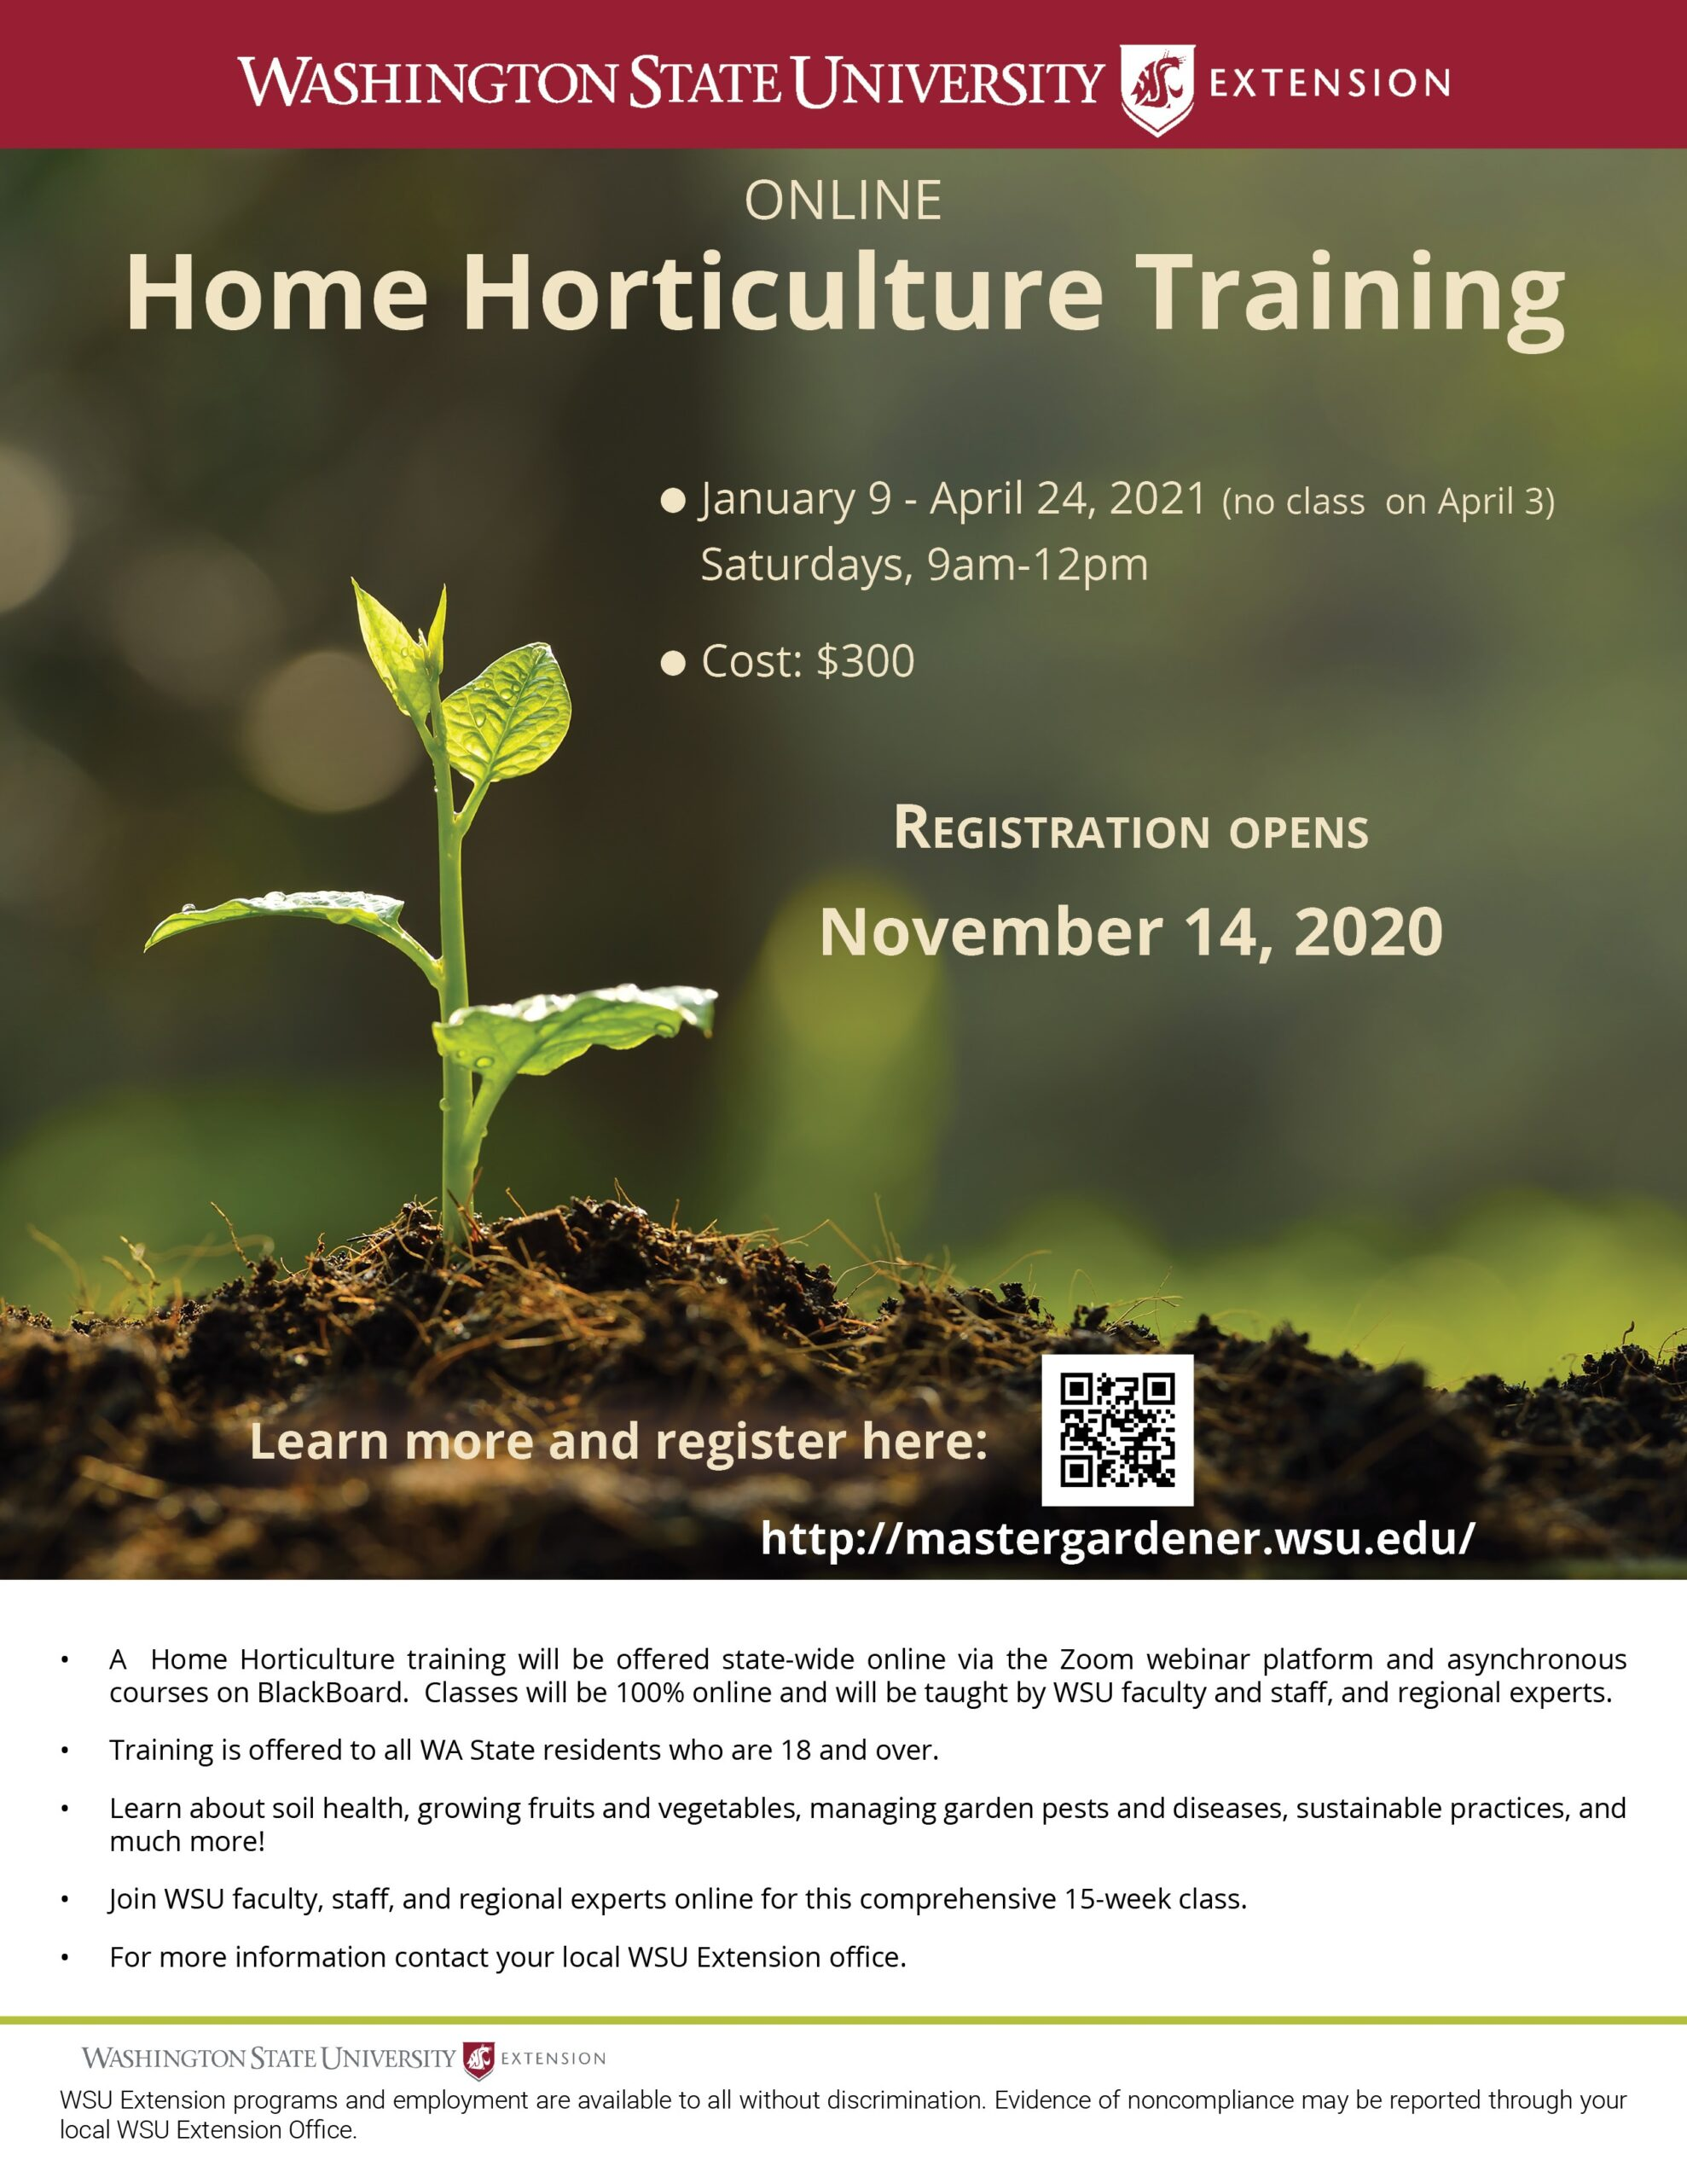 Home Horticulture Course flyer